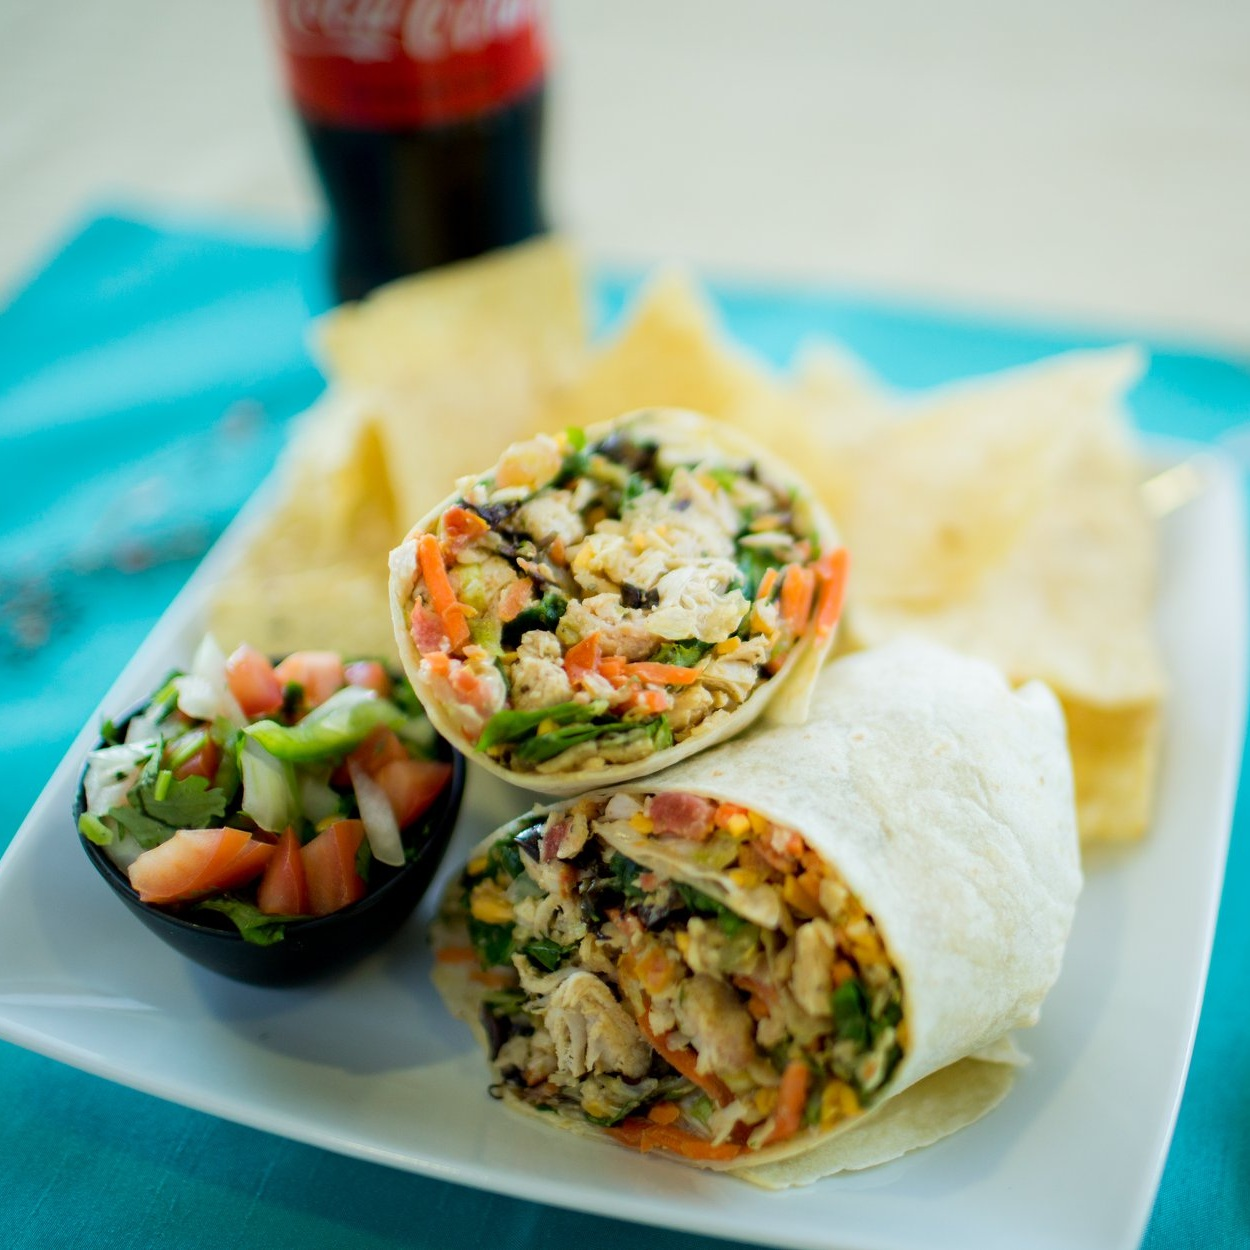 California Wrap Runner - Cali-Style Wraps